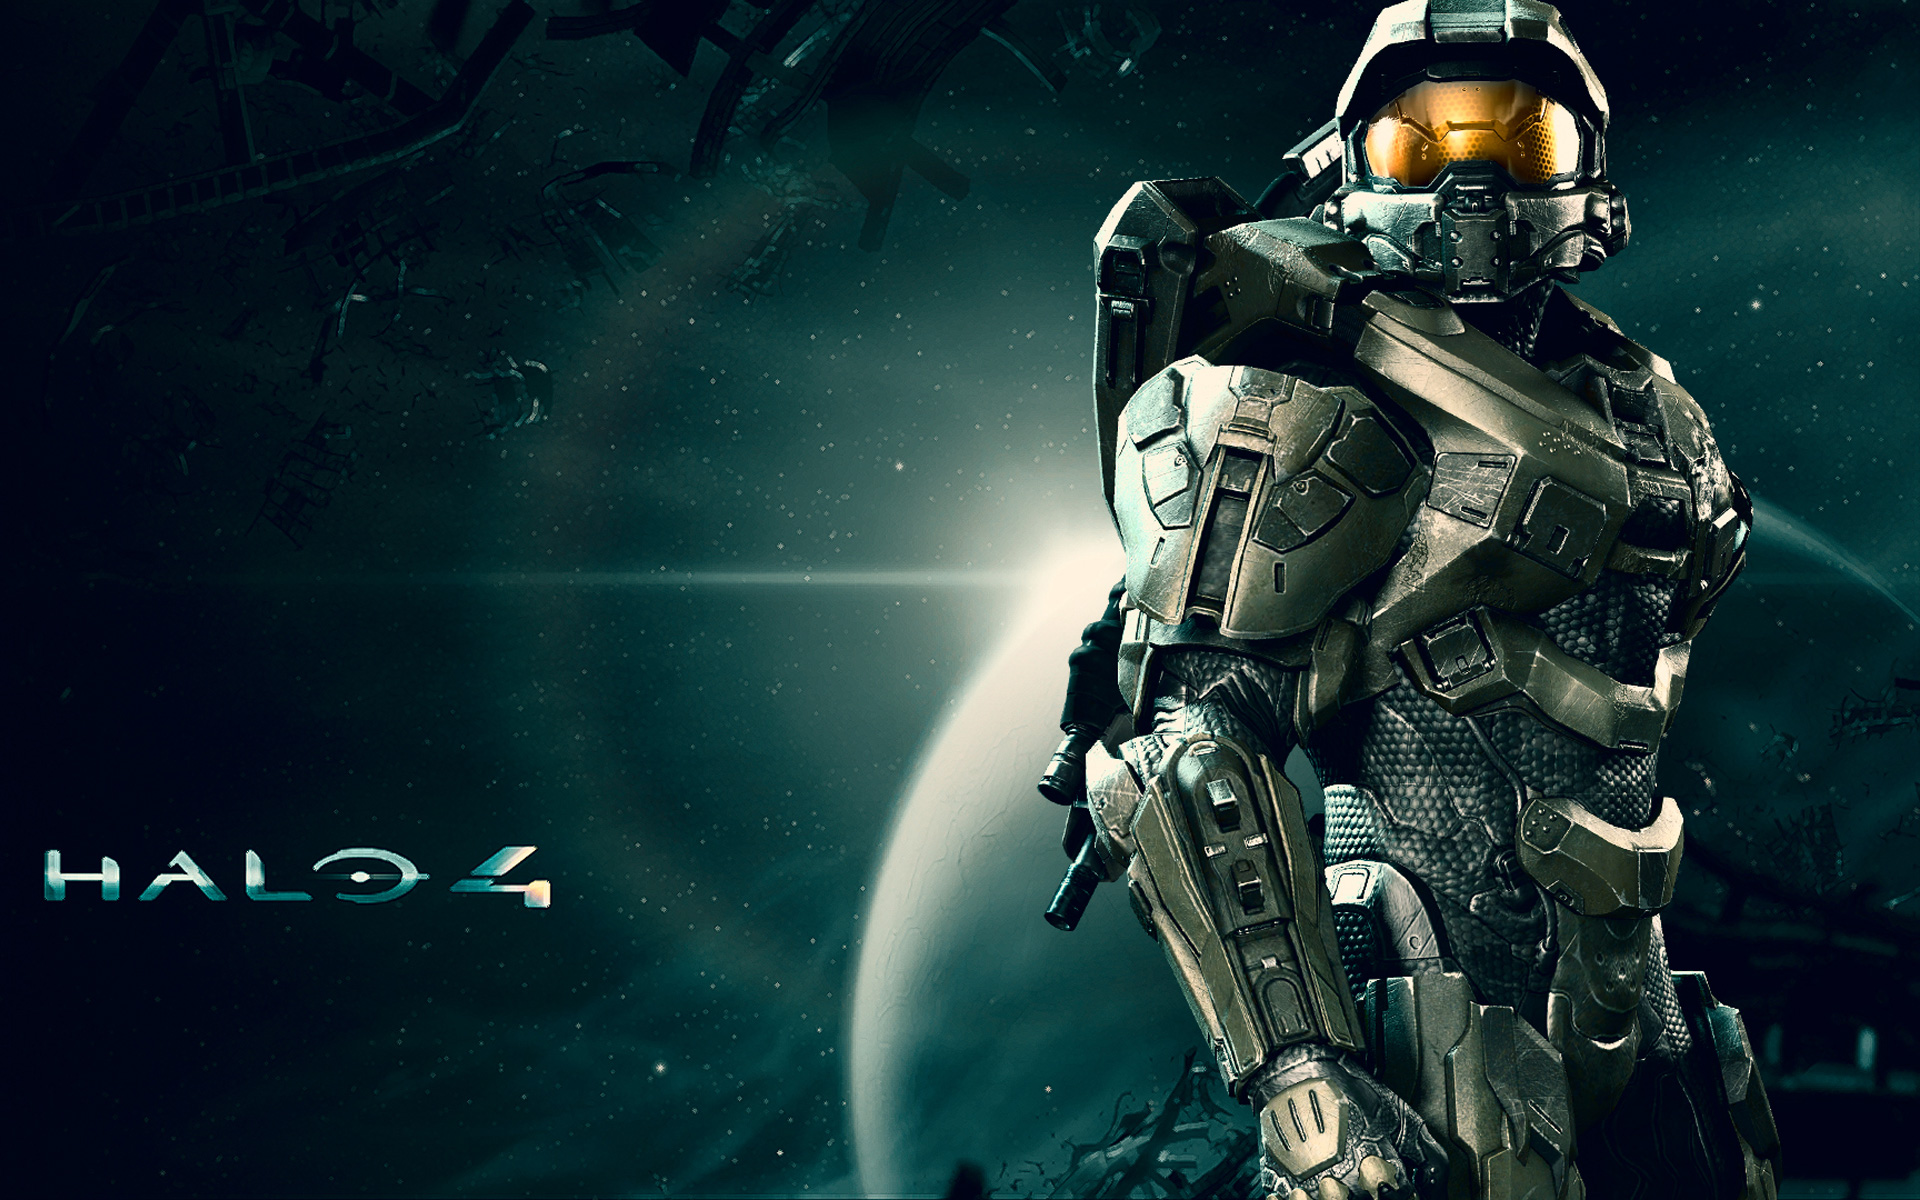 Halo 4 Wallpaper in 1920x1200 1920x1200